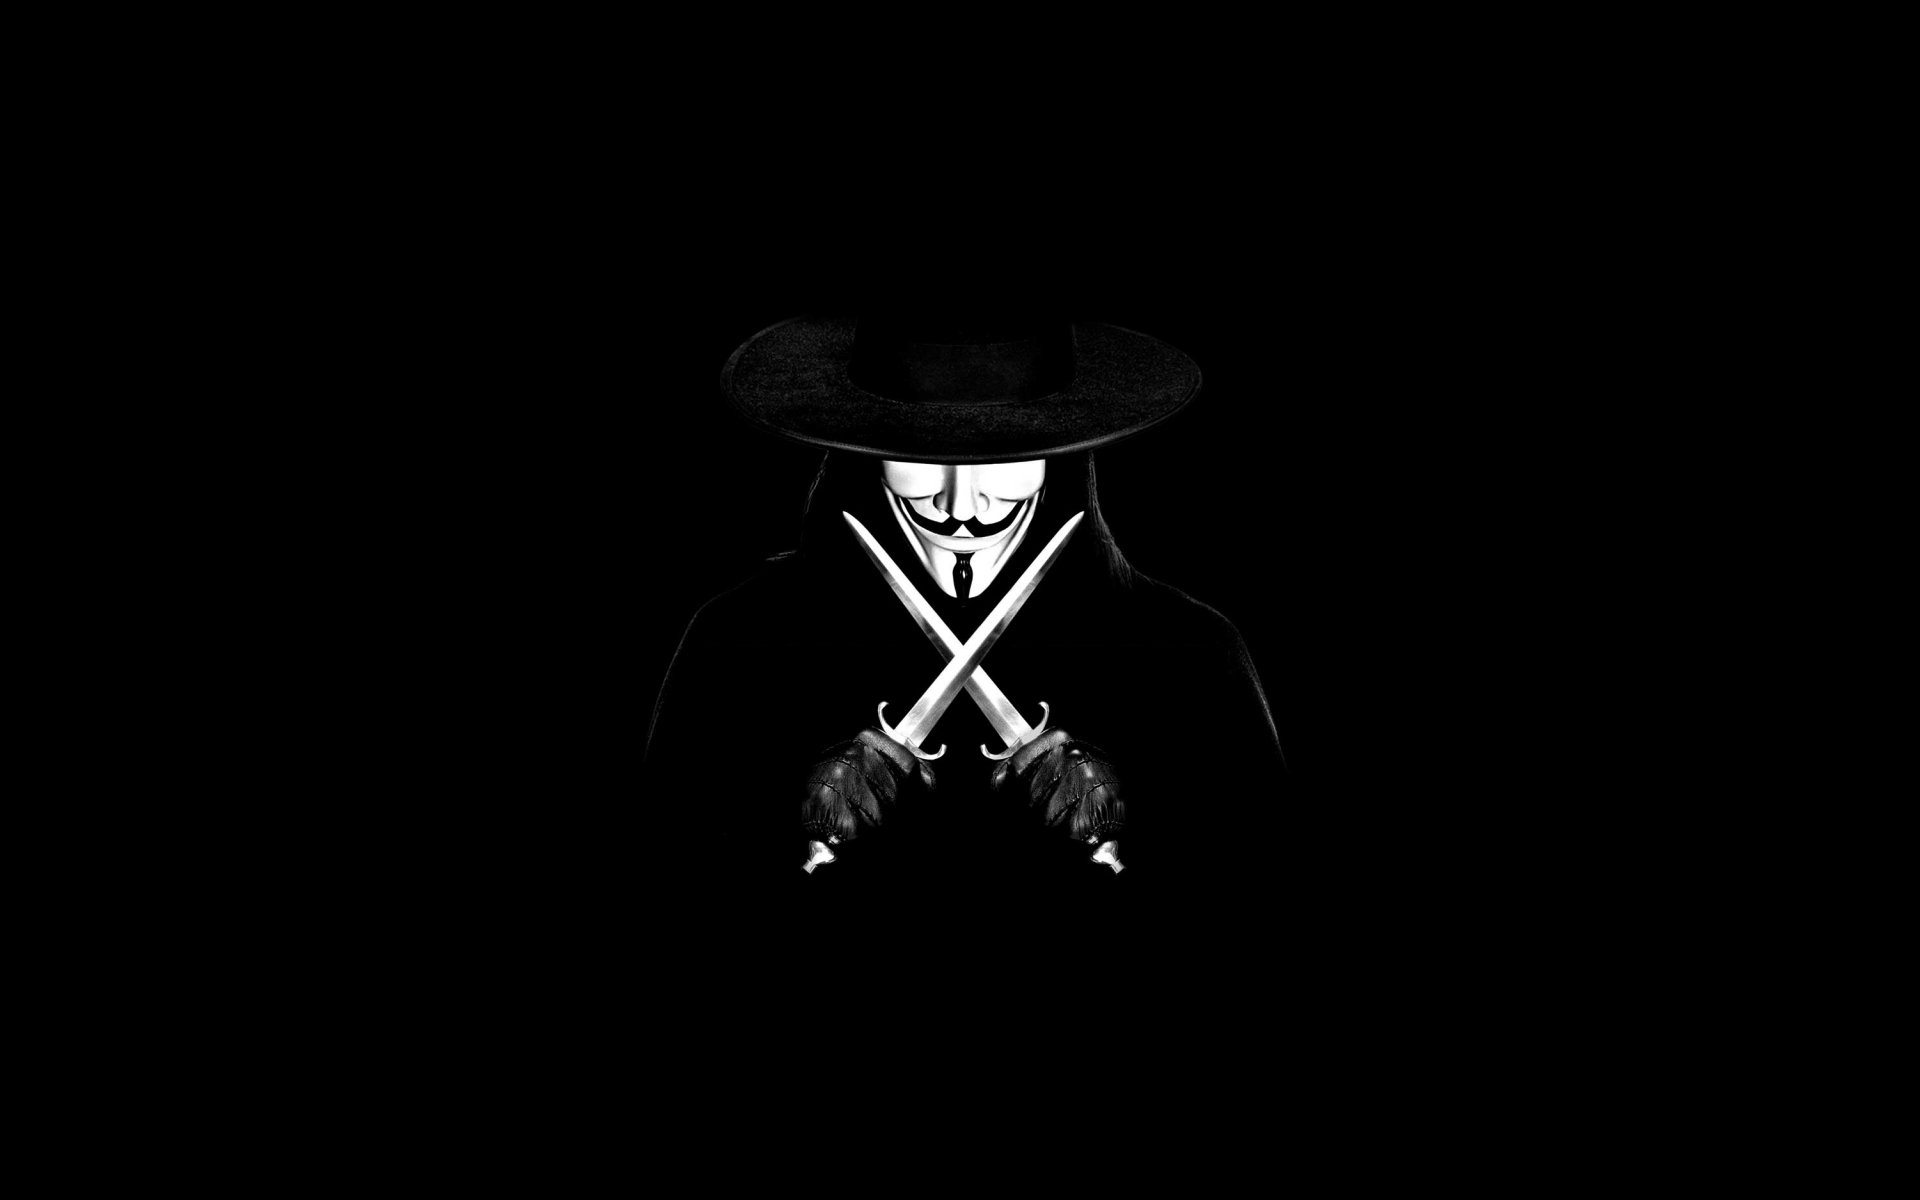 V For Vendetta Mask Wallpaper 1920x1200 Movie V For Vendetta